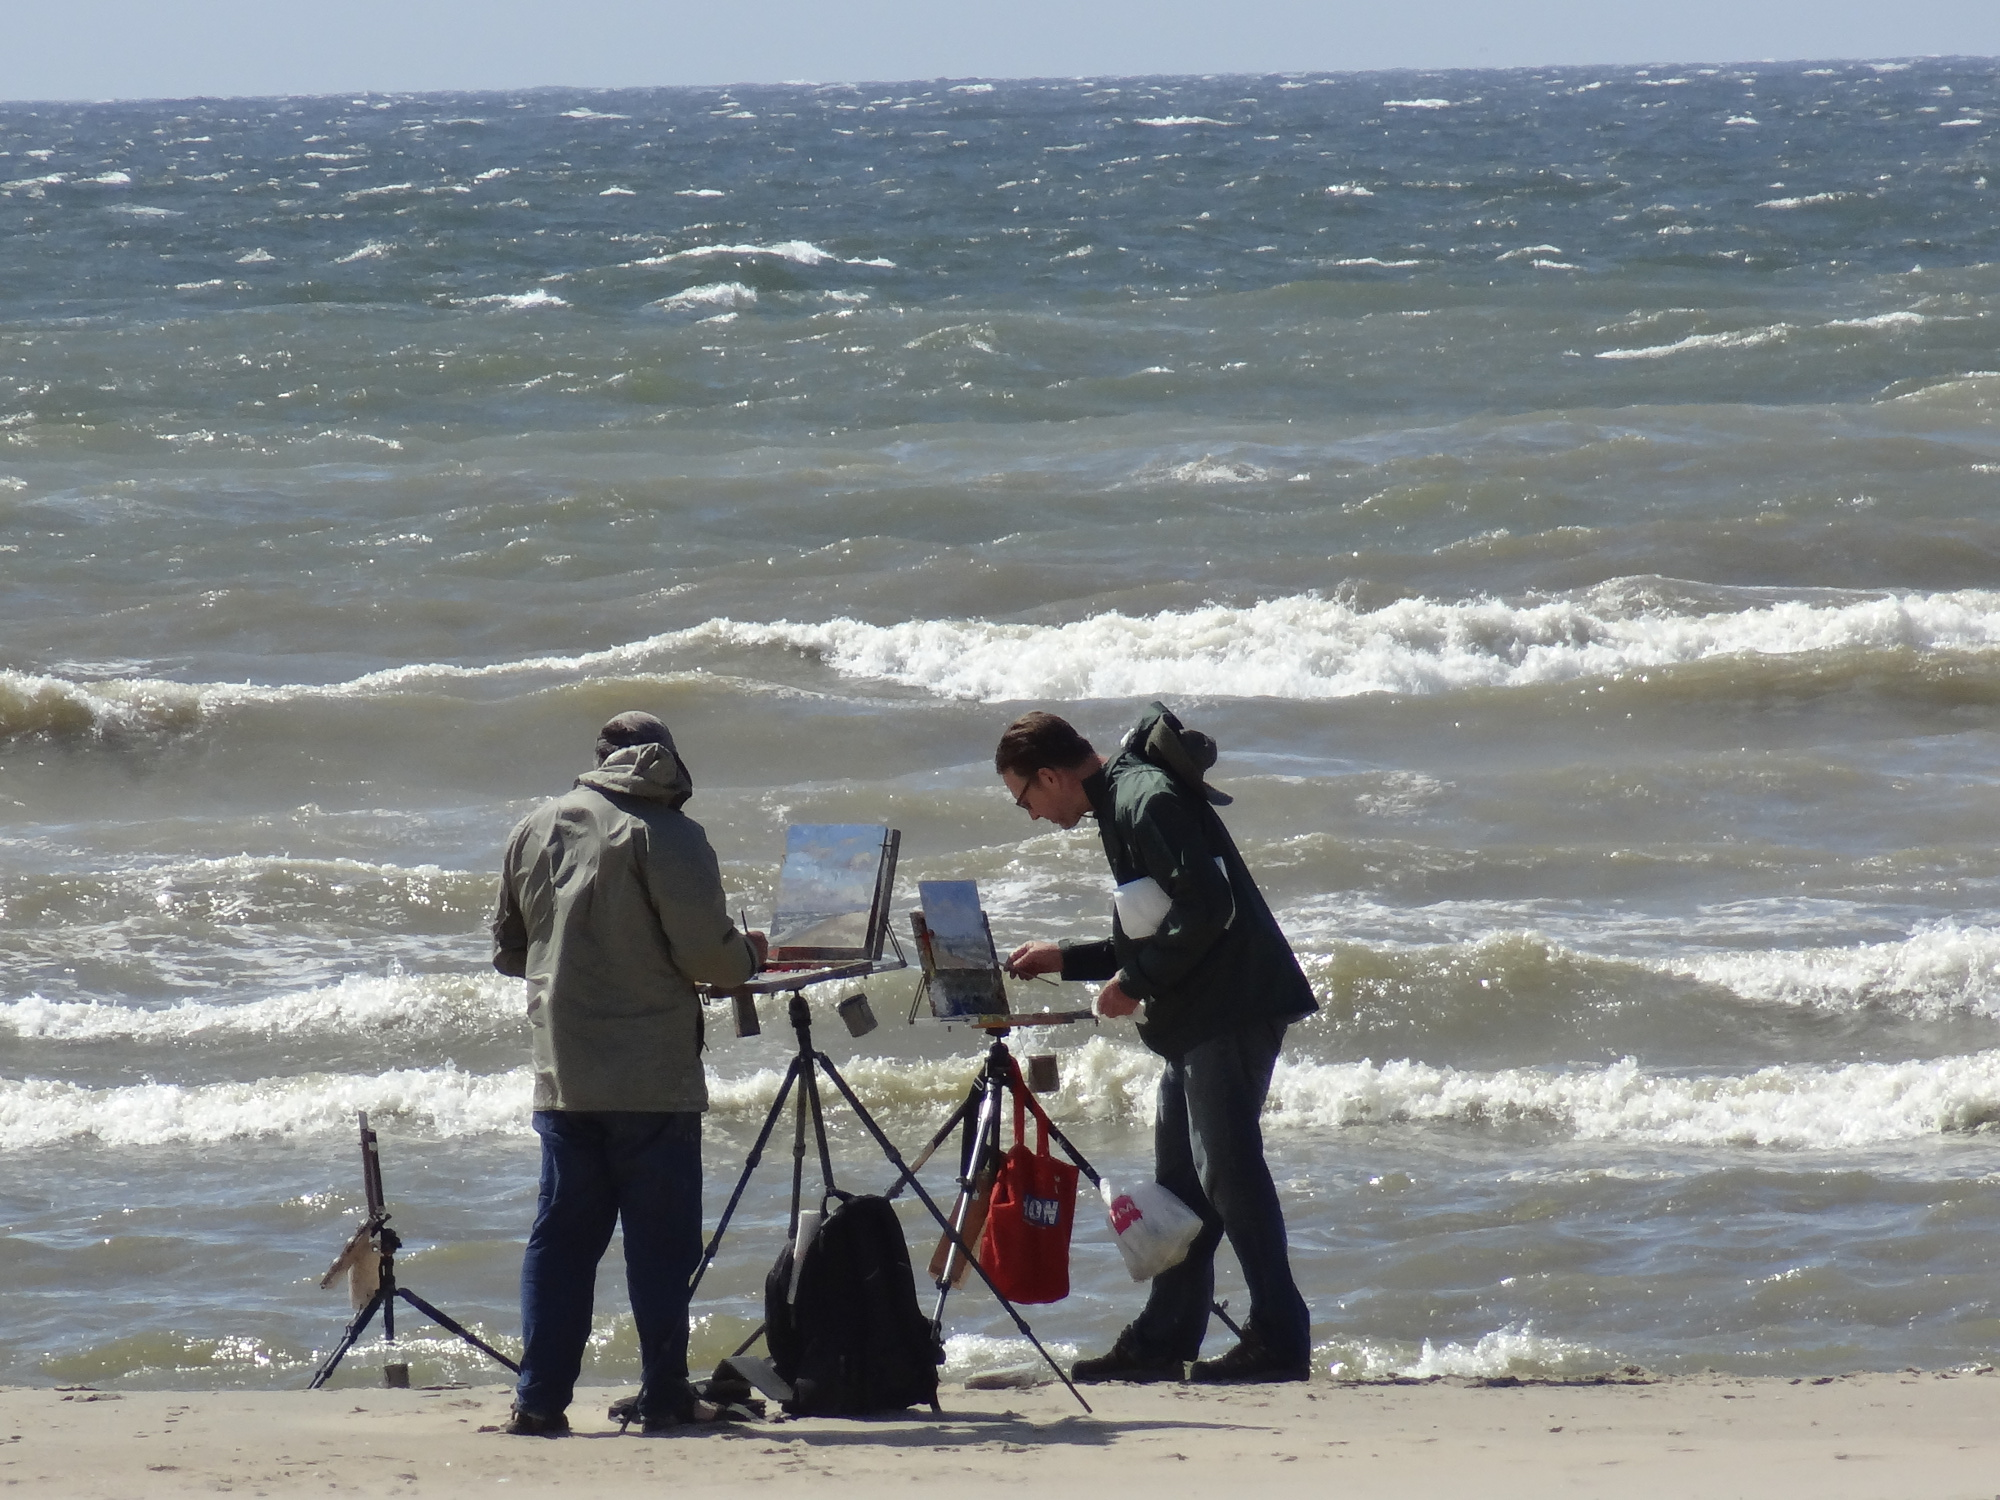 euroArt: Windy Day in Katwijk